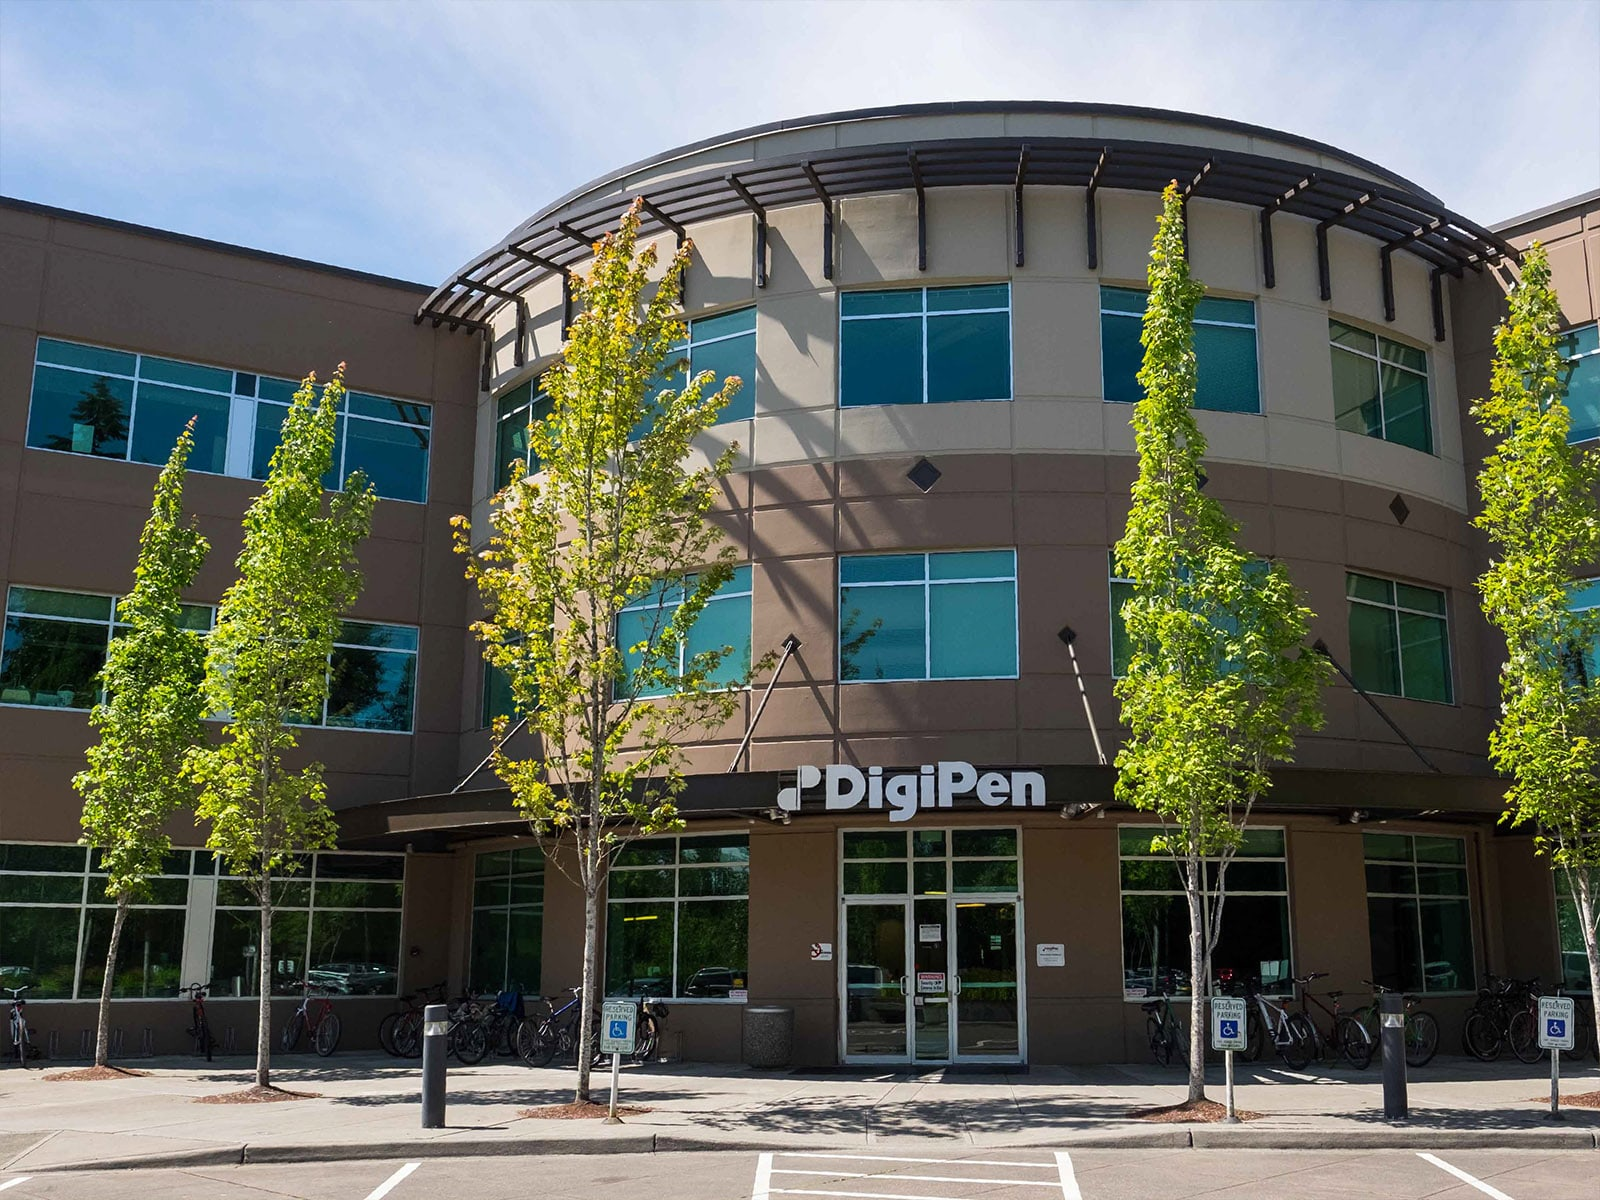 Photograph of the DigiPen building's main entrance taken at midday